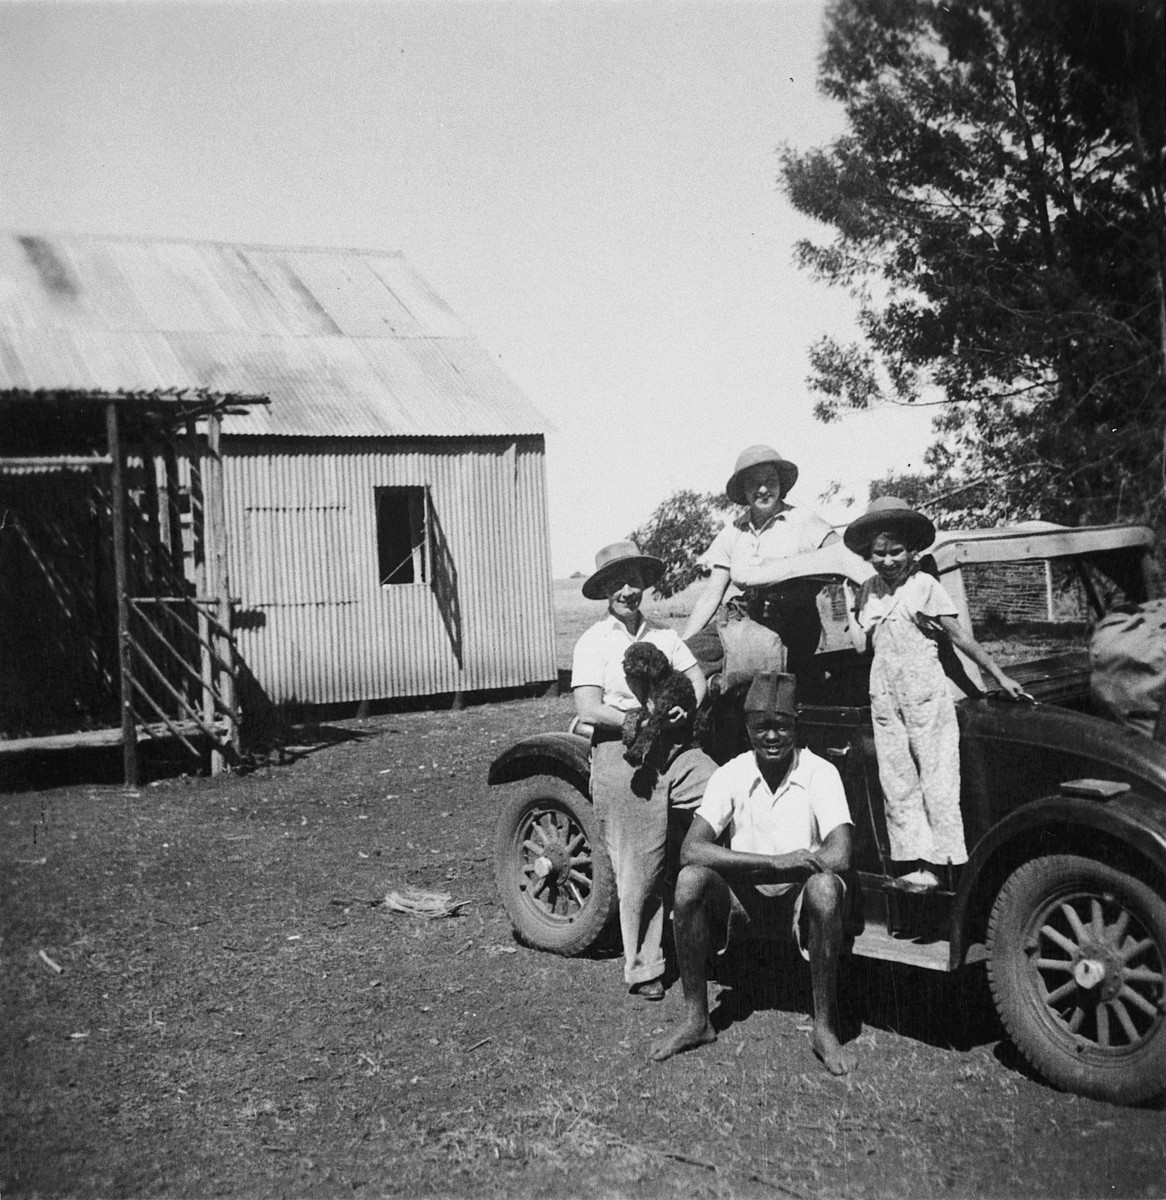 Members of a Jewish refugee family pose with an African assistant in front of their car on their farm in Kenya.  Pictured are members of the Zweig family.  Stefanie Zweig is on the right.